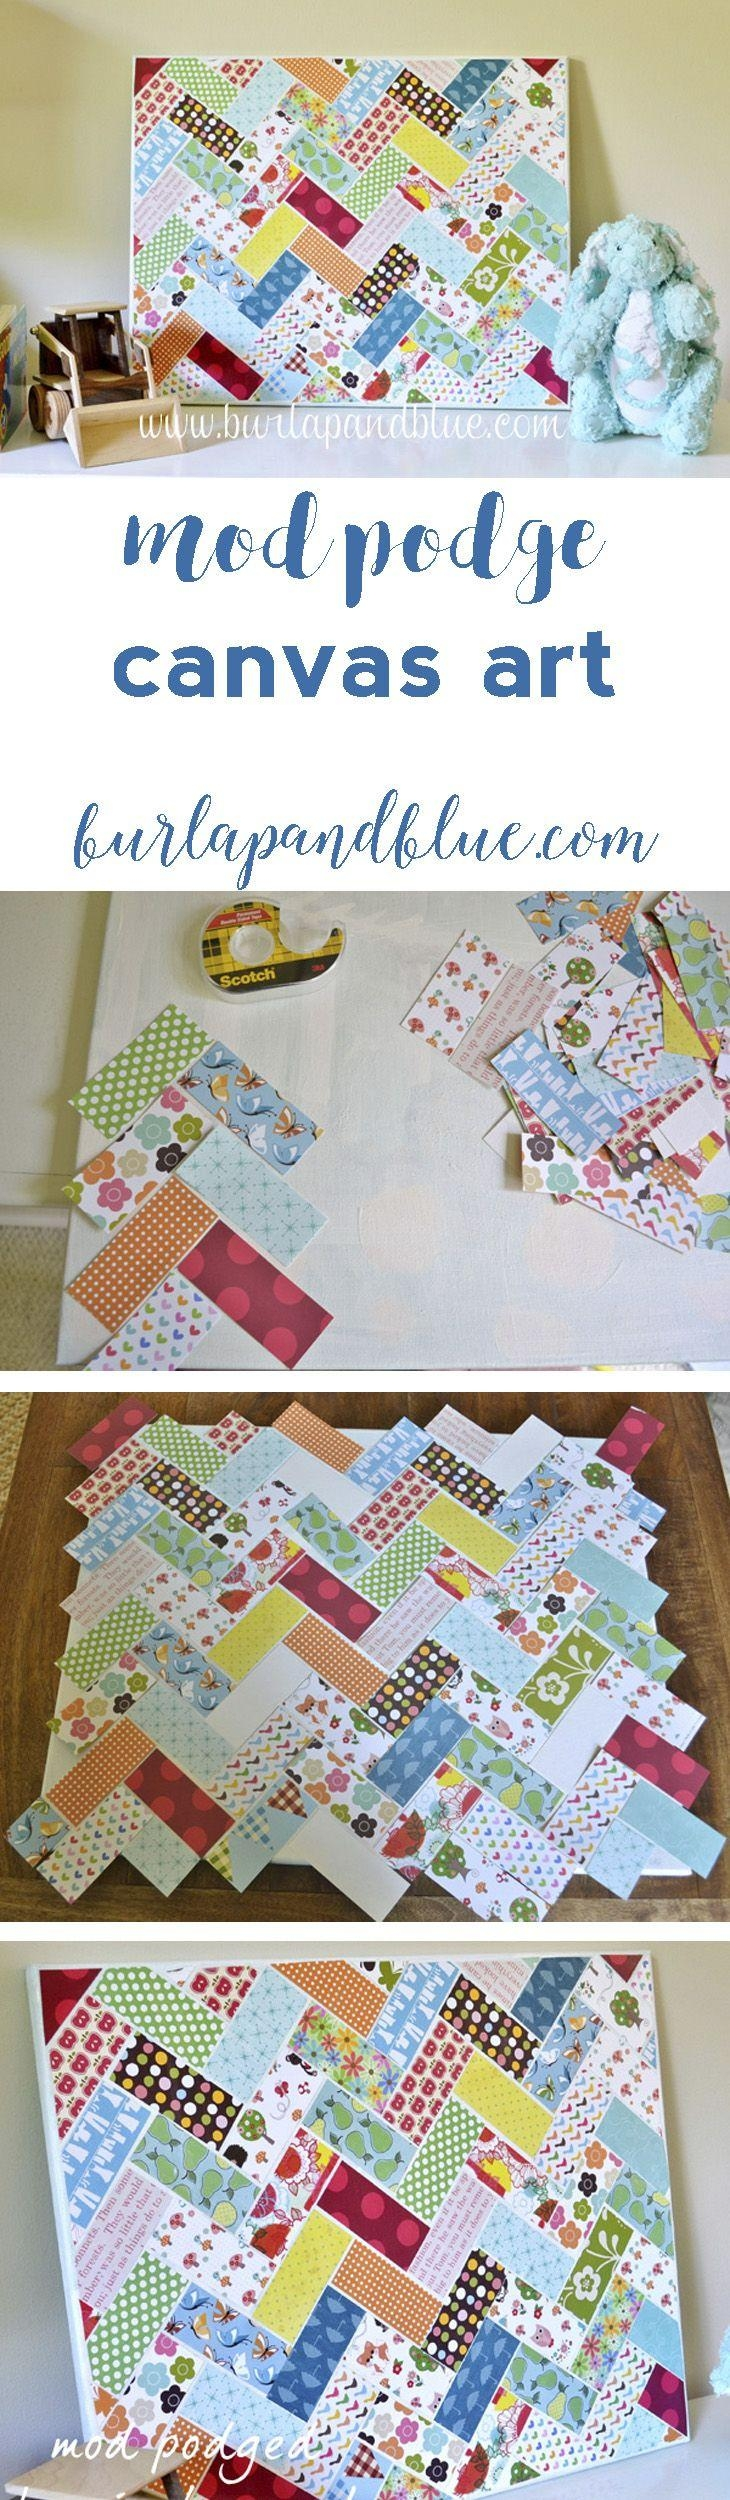 Best 20+ Canvas Wall Art Ideas On Pinterest—No Signup Required In Diy Pinterest Canvas Art (Image 3 of 20)